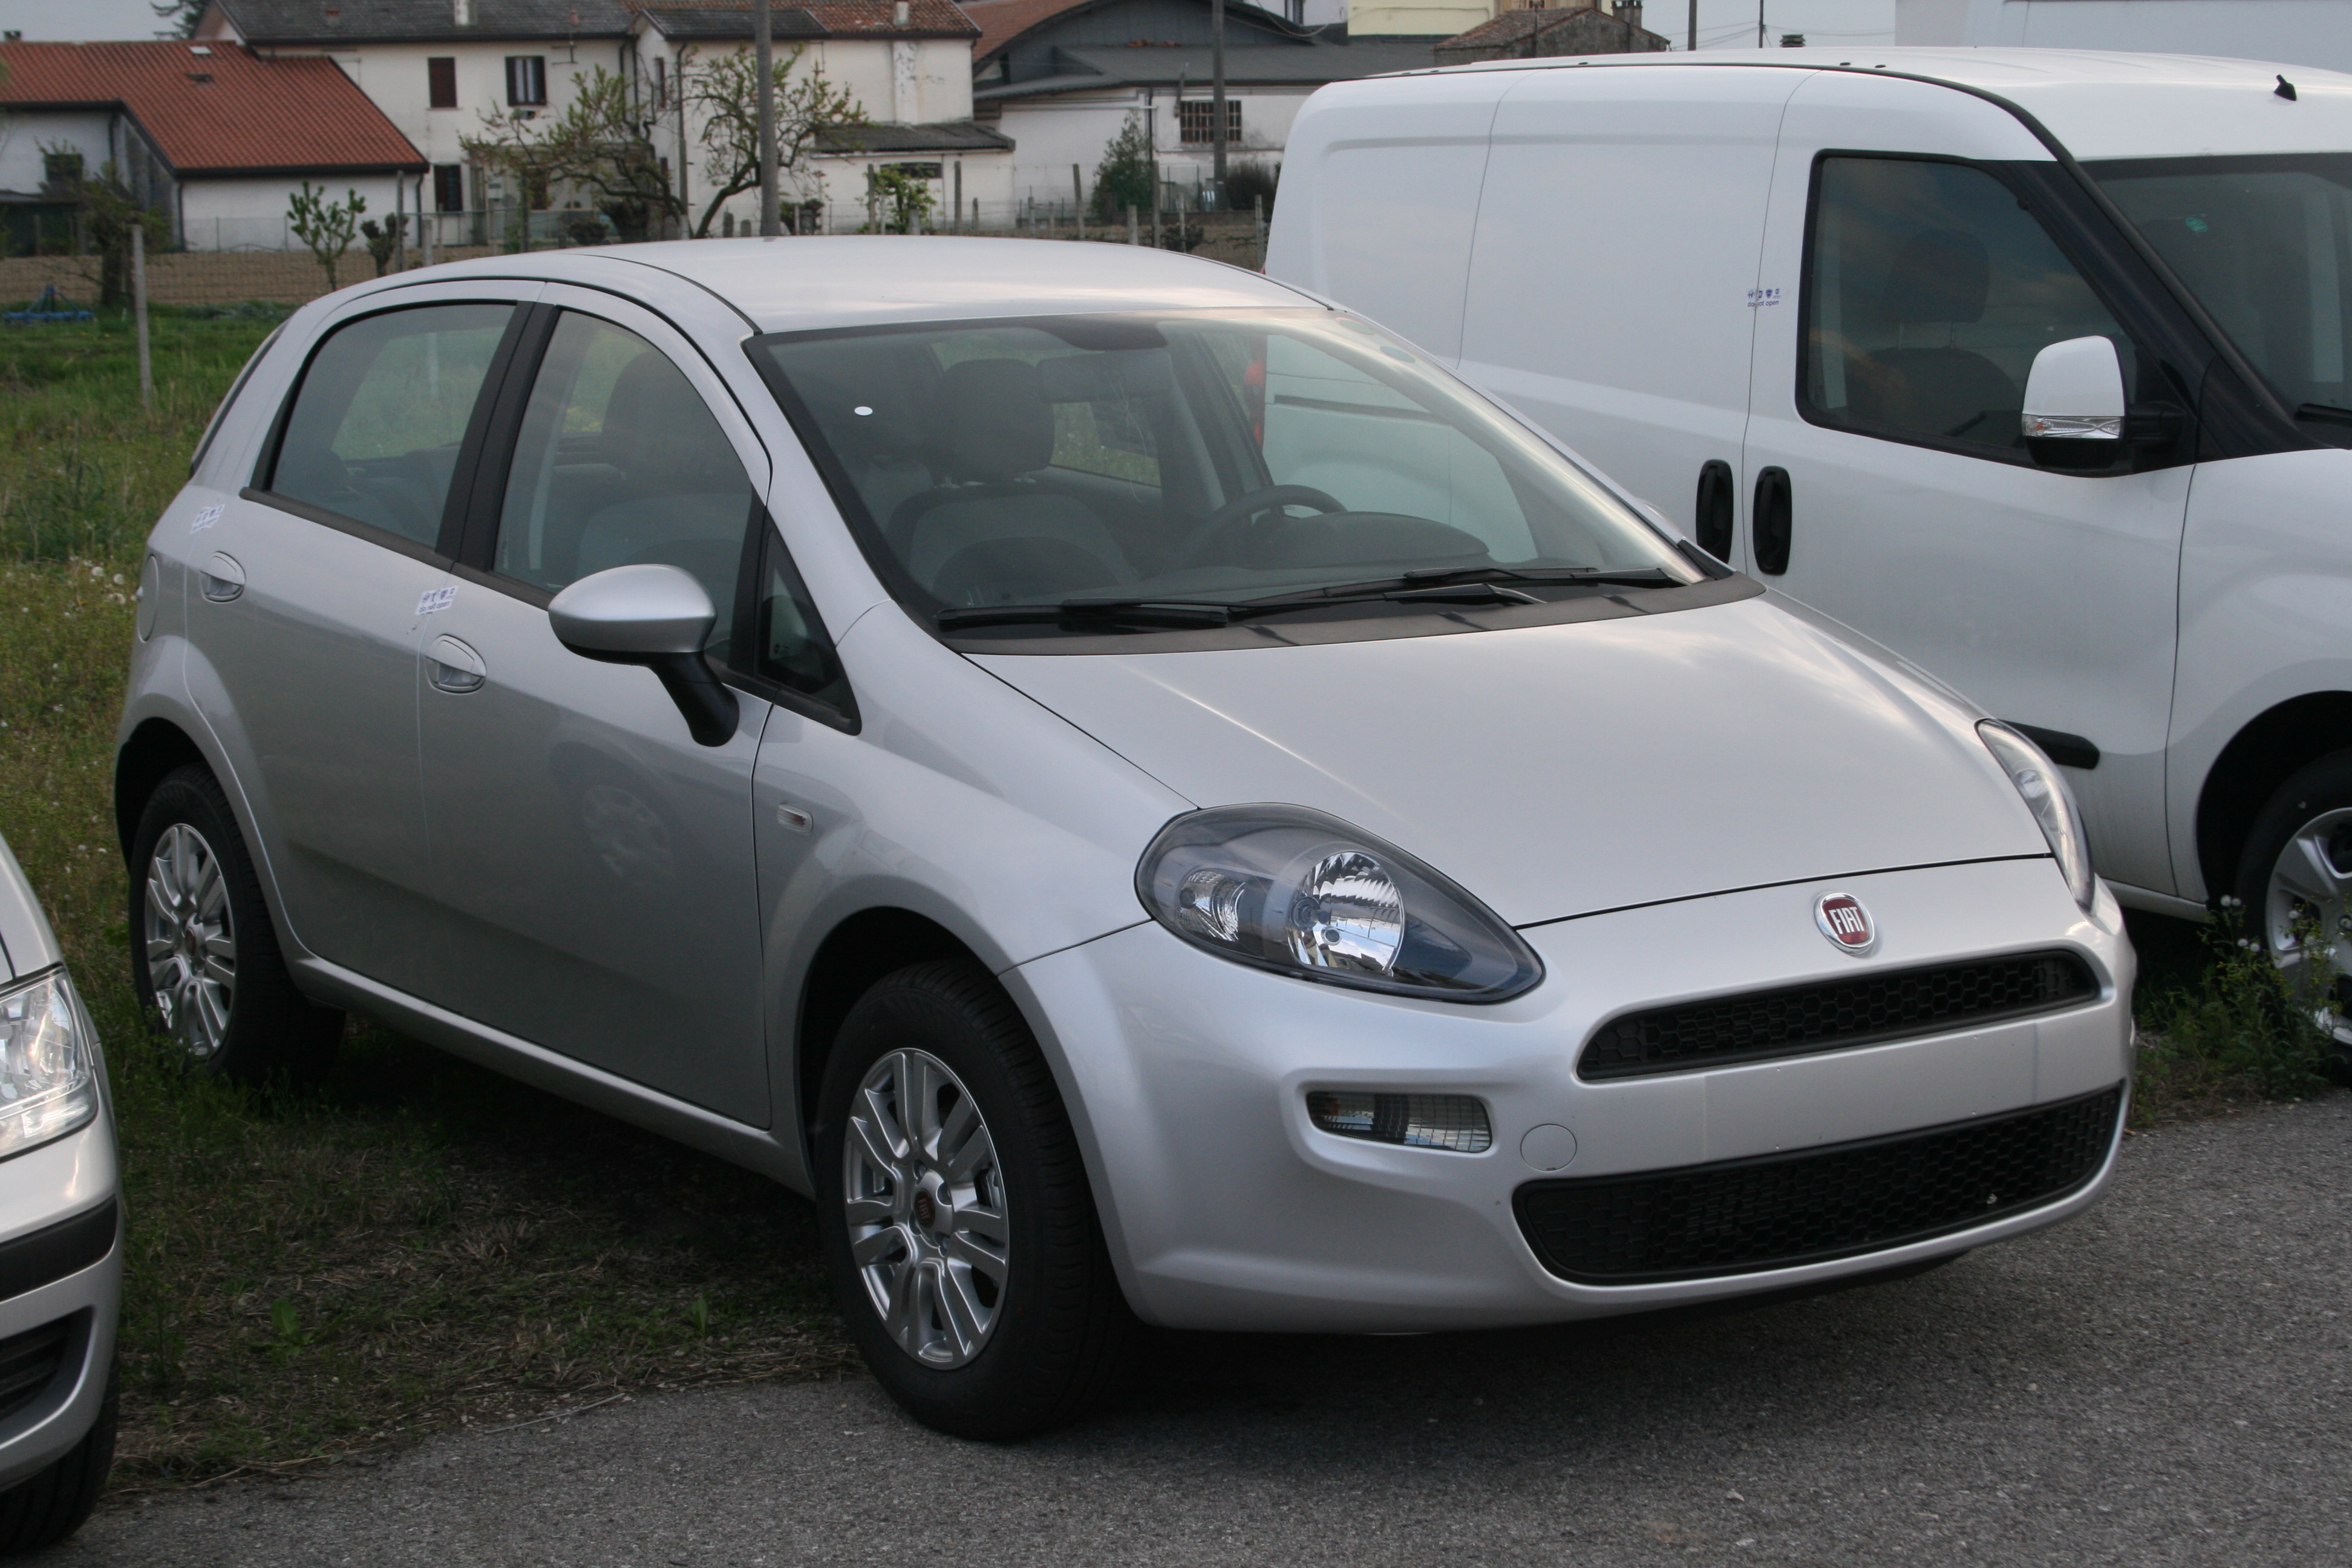 fiat punto 2012: review, amazing pictures and images – look at the car